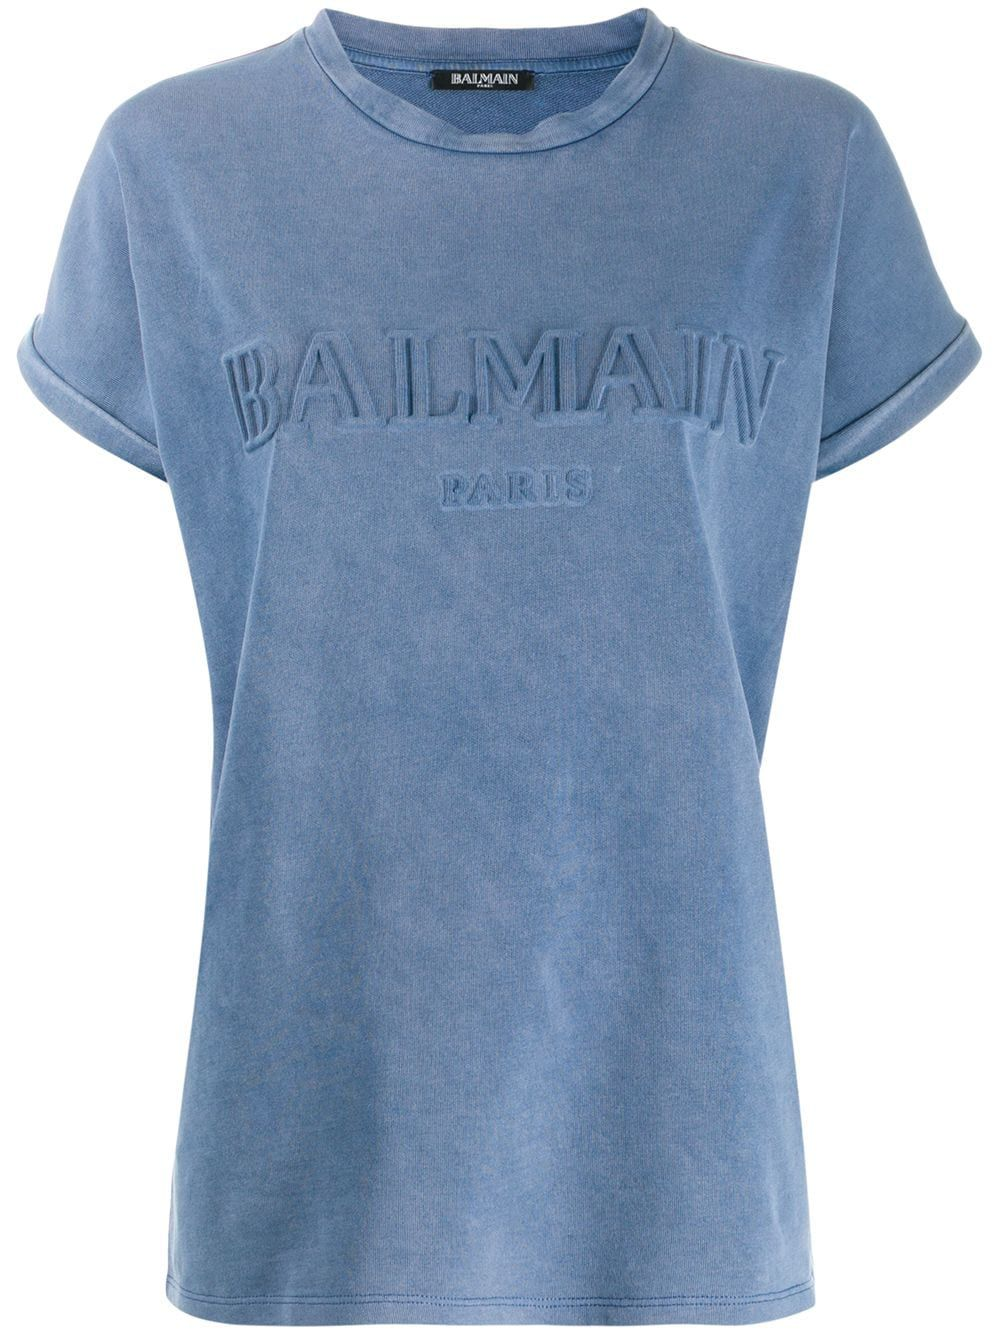 premium selection 1c953 f8866 Balmain Balmain logo jersey T-shirt - Blue | Products in ...